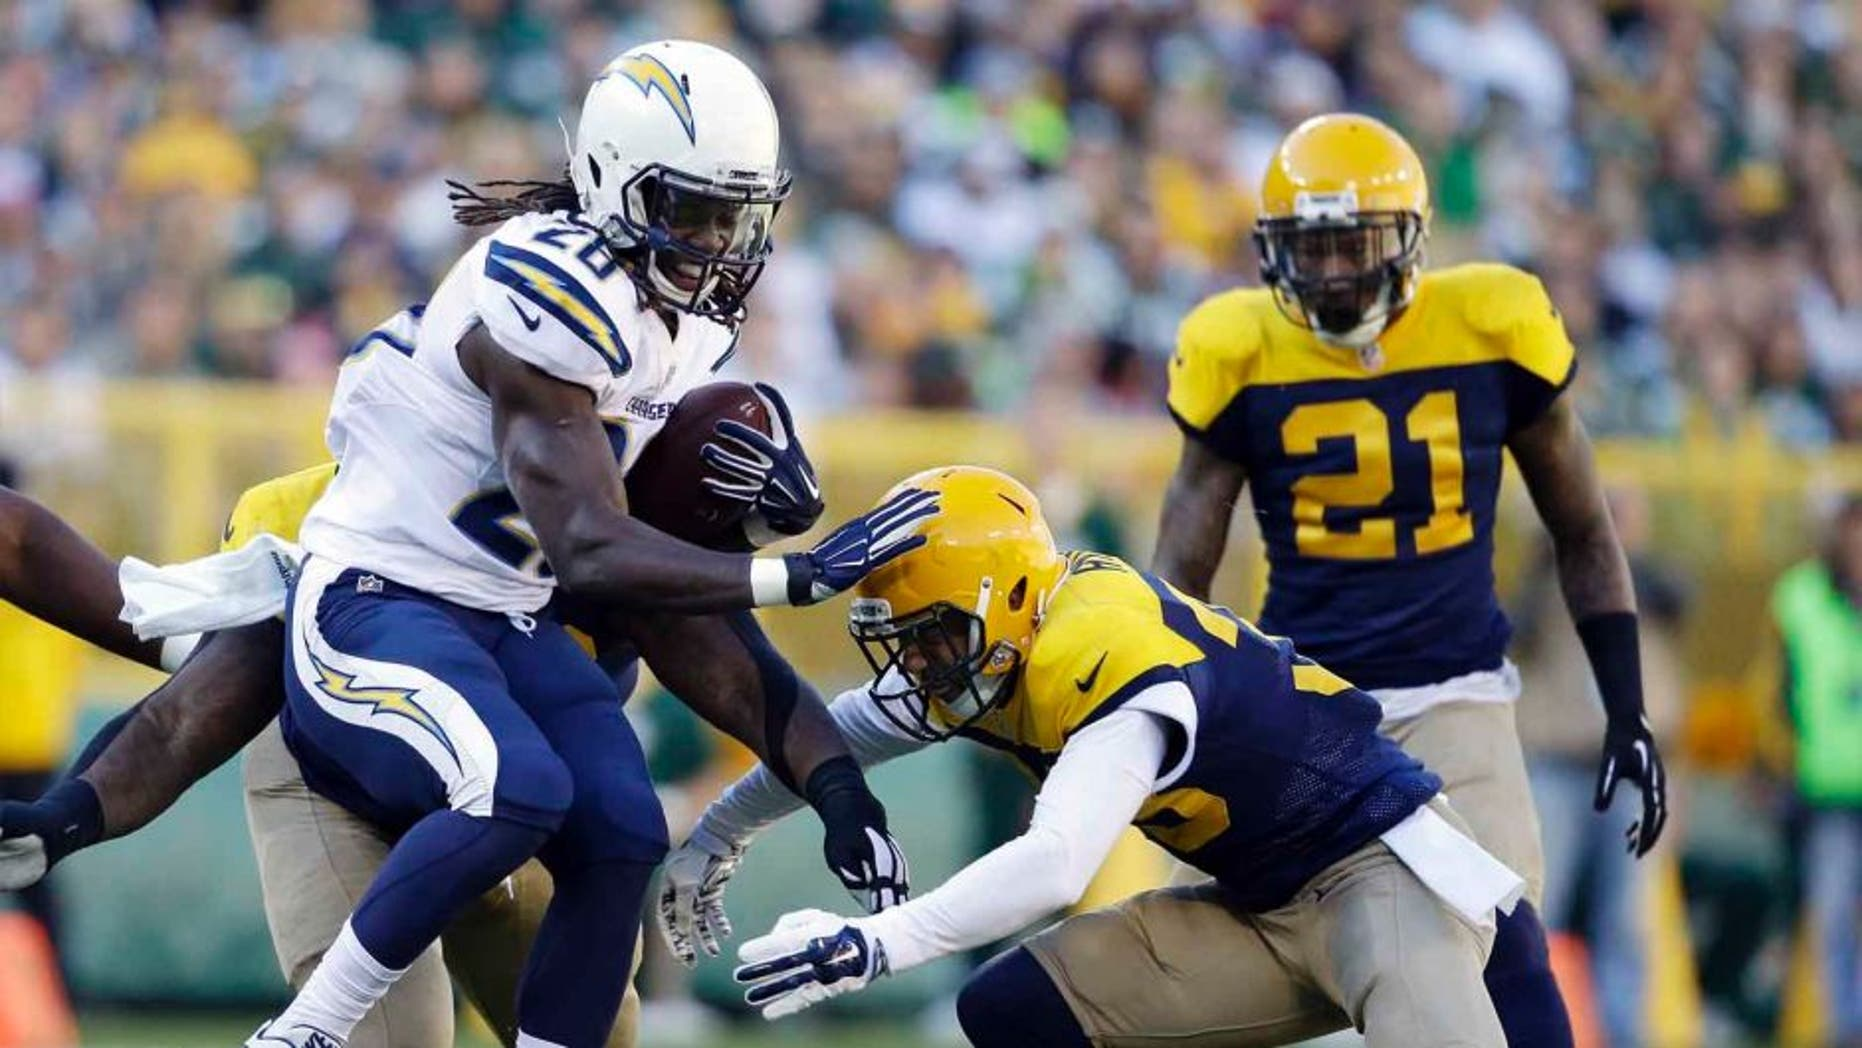 San Diego Chargers running back Melvin Gordon is tackled by the Green Bay Packers' Micah Hyde during the first half Sunday, Oct. 18, 2015, in Green Bay, Wis.